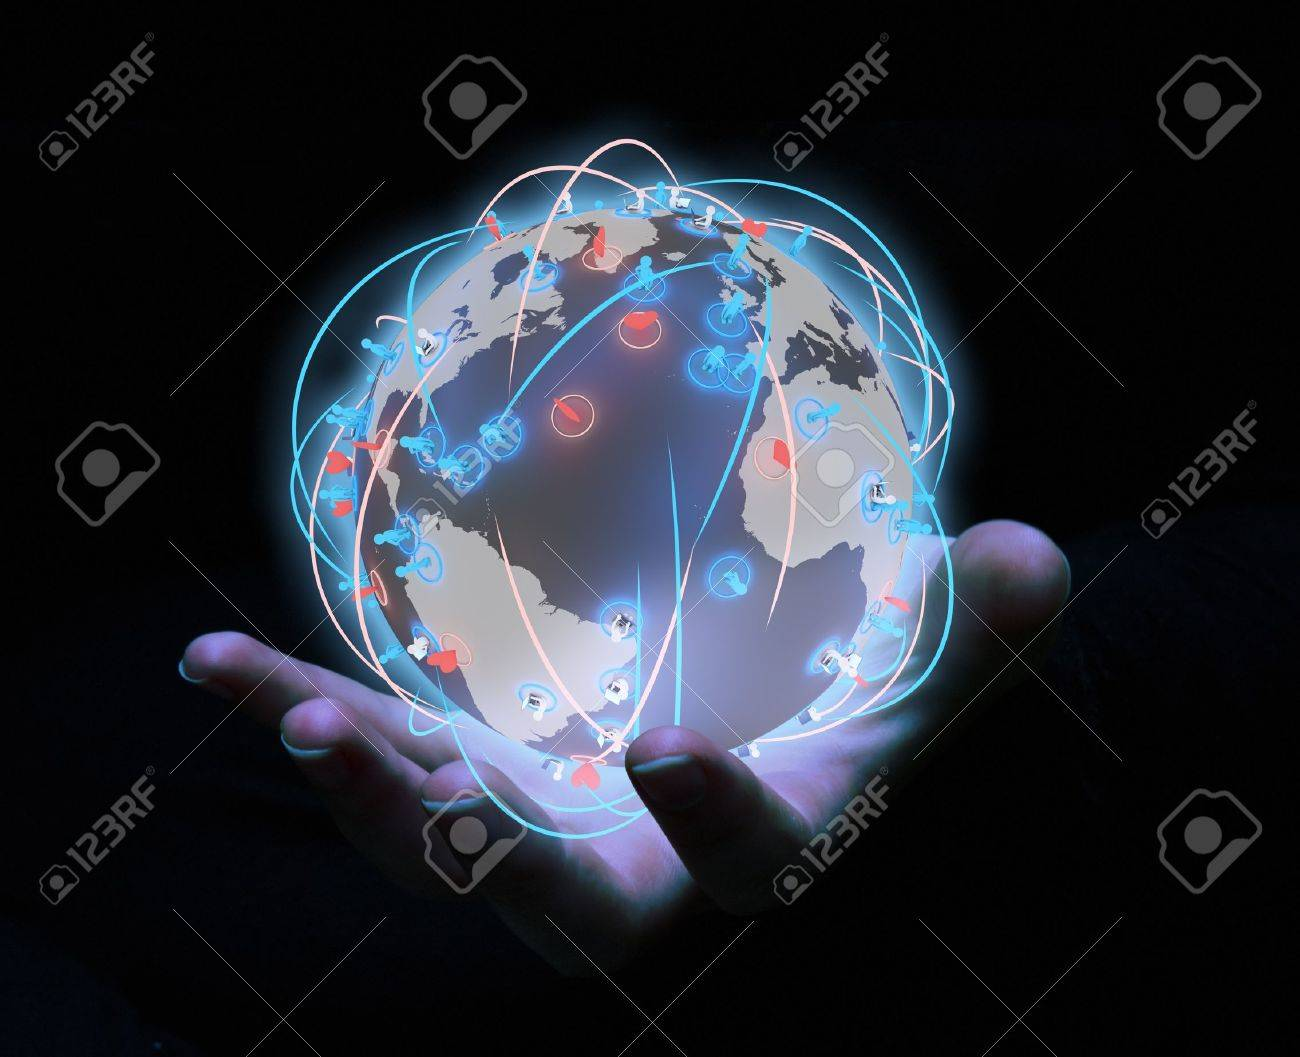 render of a global network of hearts and people Stock Photo - 10961159